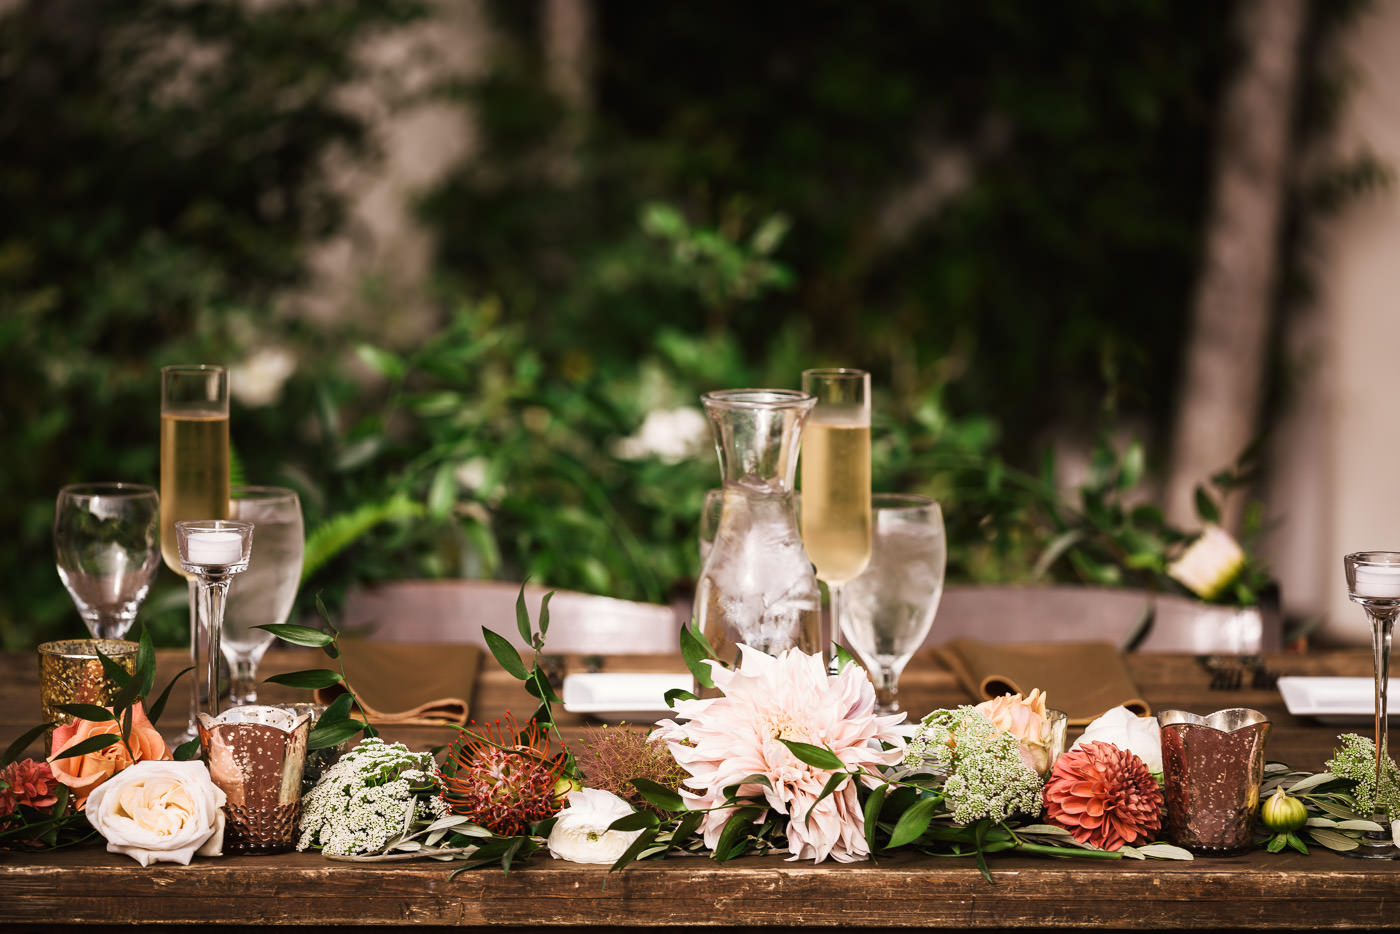 Sweetheart table decorations and floral arrangements.